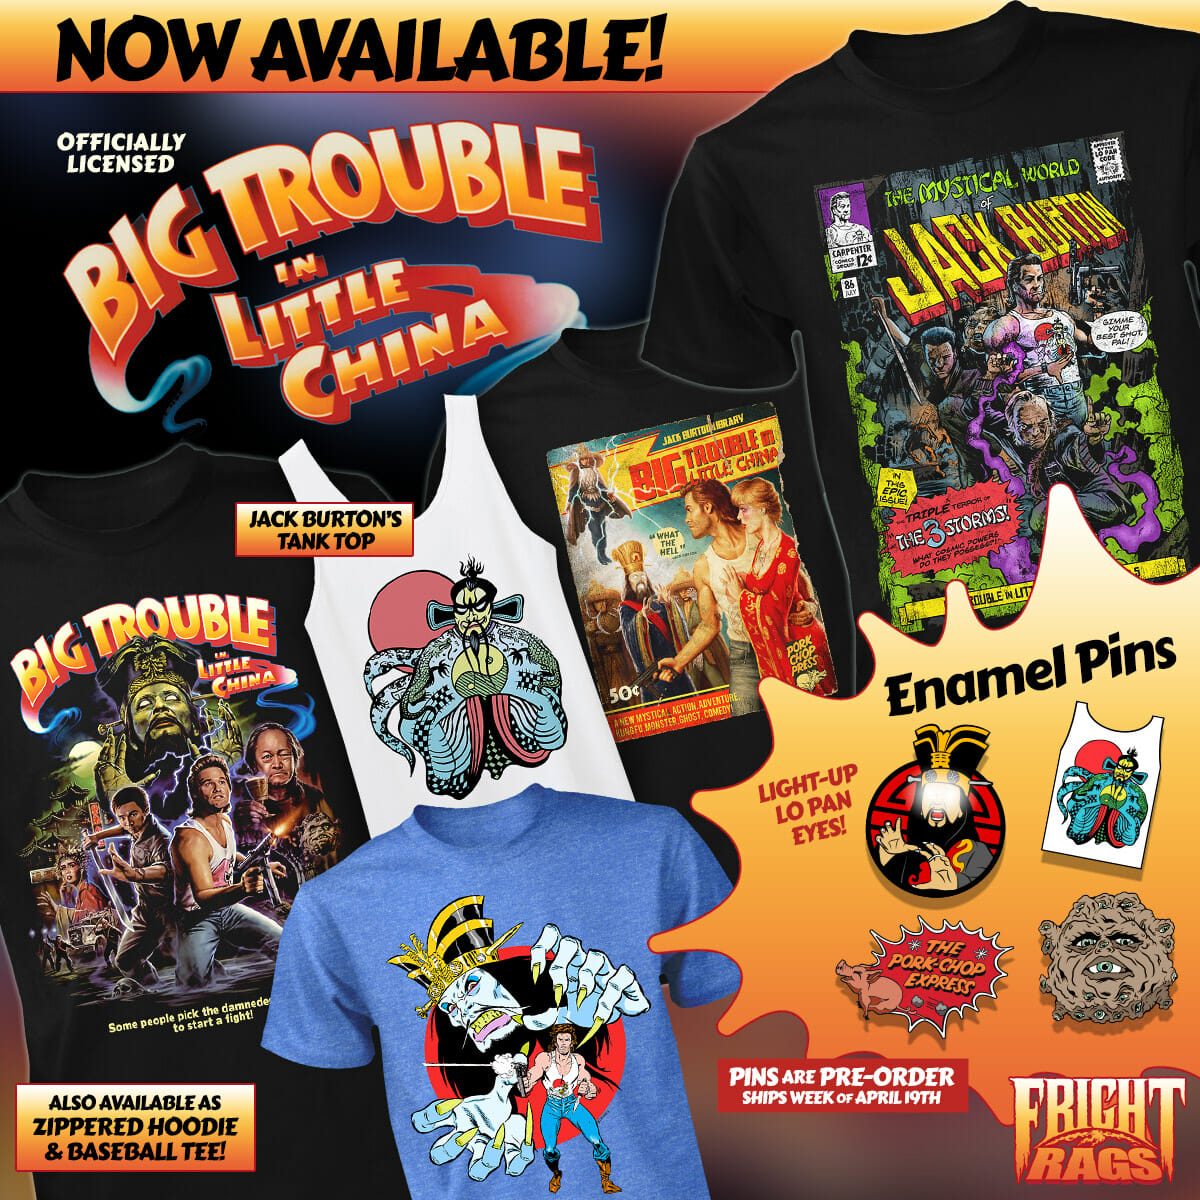 Big Trouble in Little China T-Shirts Now Available from